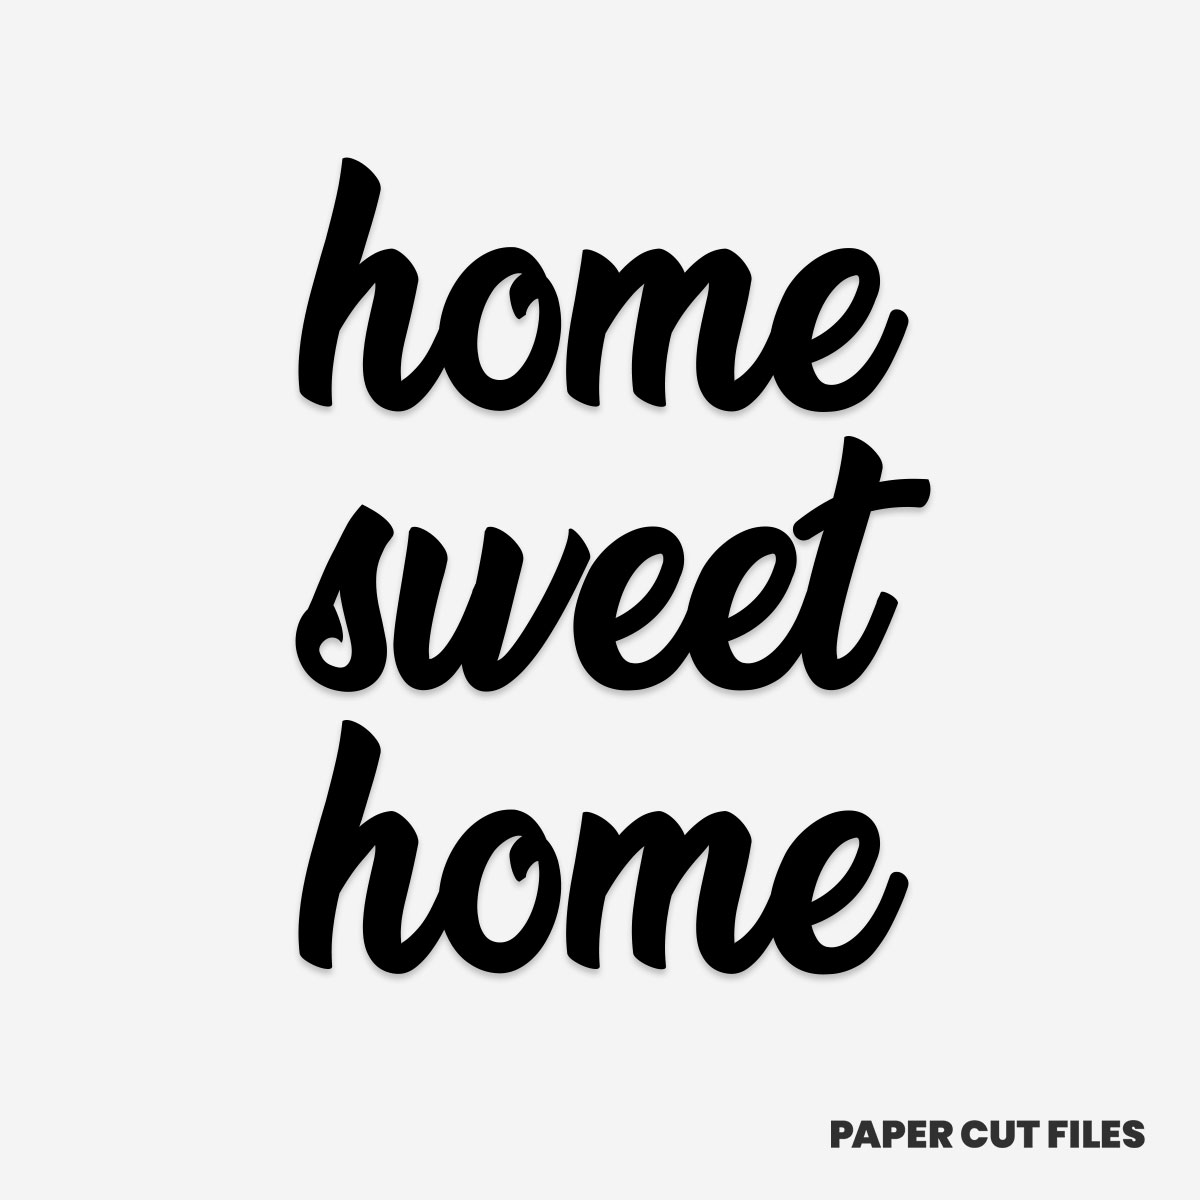 'Home sweet home' quote - Free SVG & PNG PaperCut Files